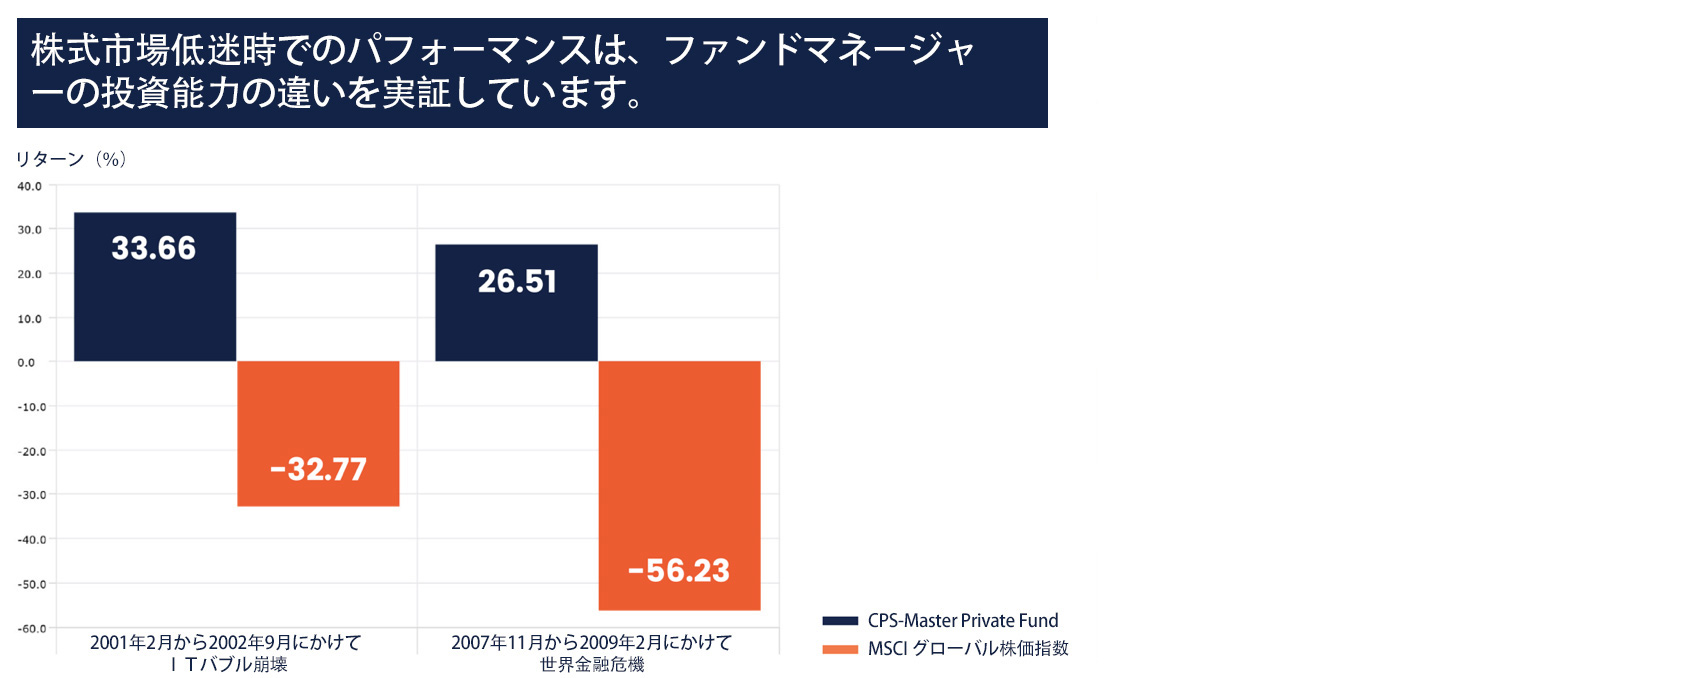 cp-global-crisis-proof-performance-japanese-2